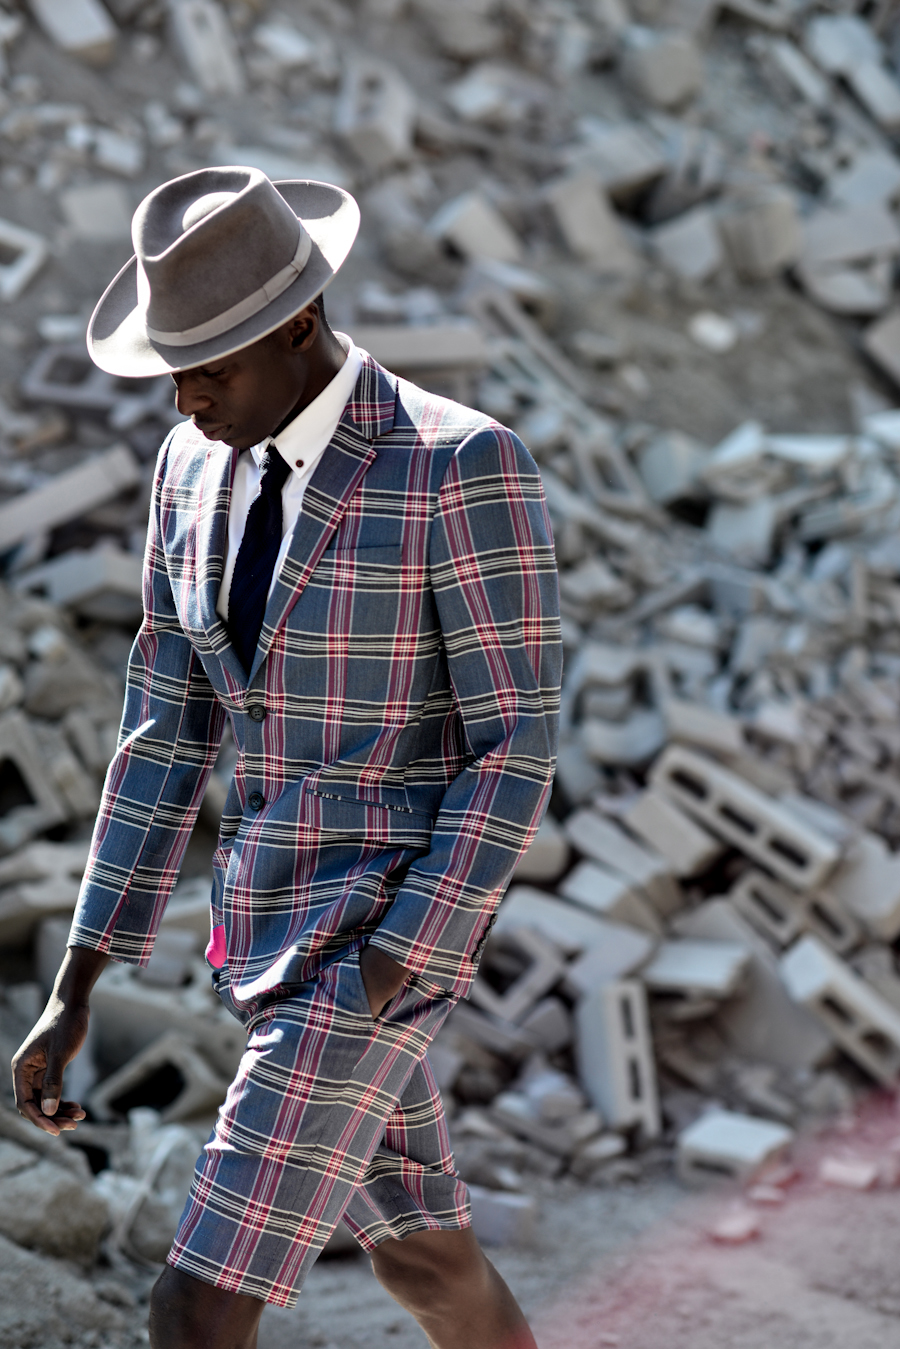 Moods-of-Norway-Dapper-Lou-Mass-Fall-East-Flatbush-Brooklyn-Plaid-Suit-2.jpg